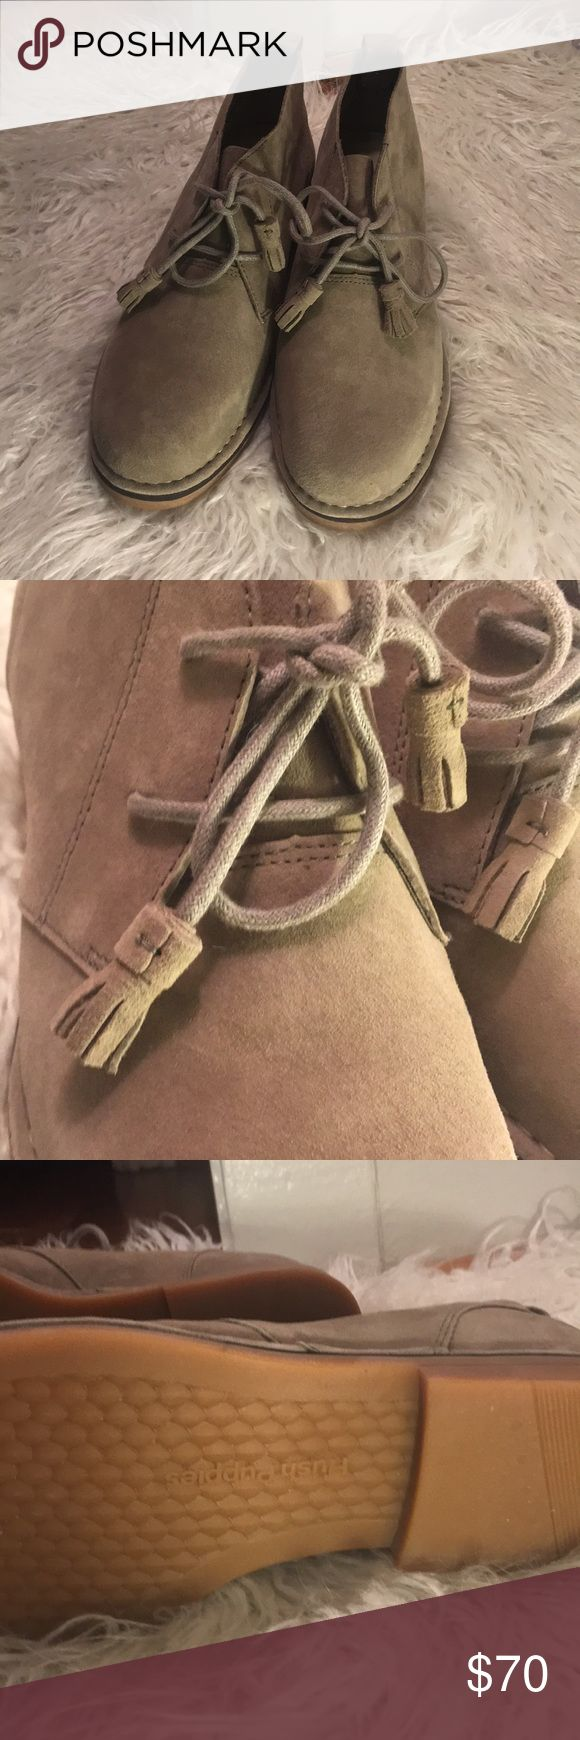 Hush puppies Suede Booties with Tassel Laces NWOT Hush Puppie Suede Tassle Booties 9.5. Never been worn! New without box. Taupe color. Hush Puppies Shoes Ankle Boots & Booties